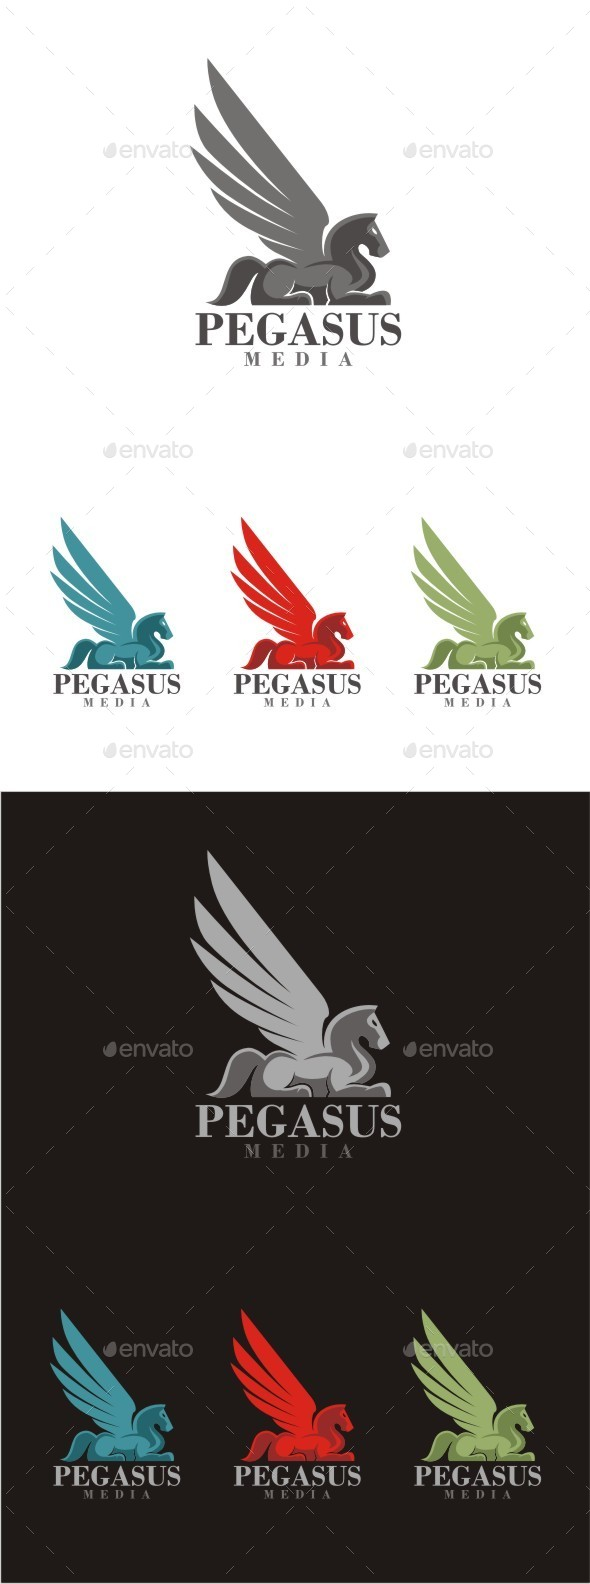 GraphicRiver Pegasus Media 11882975